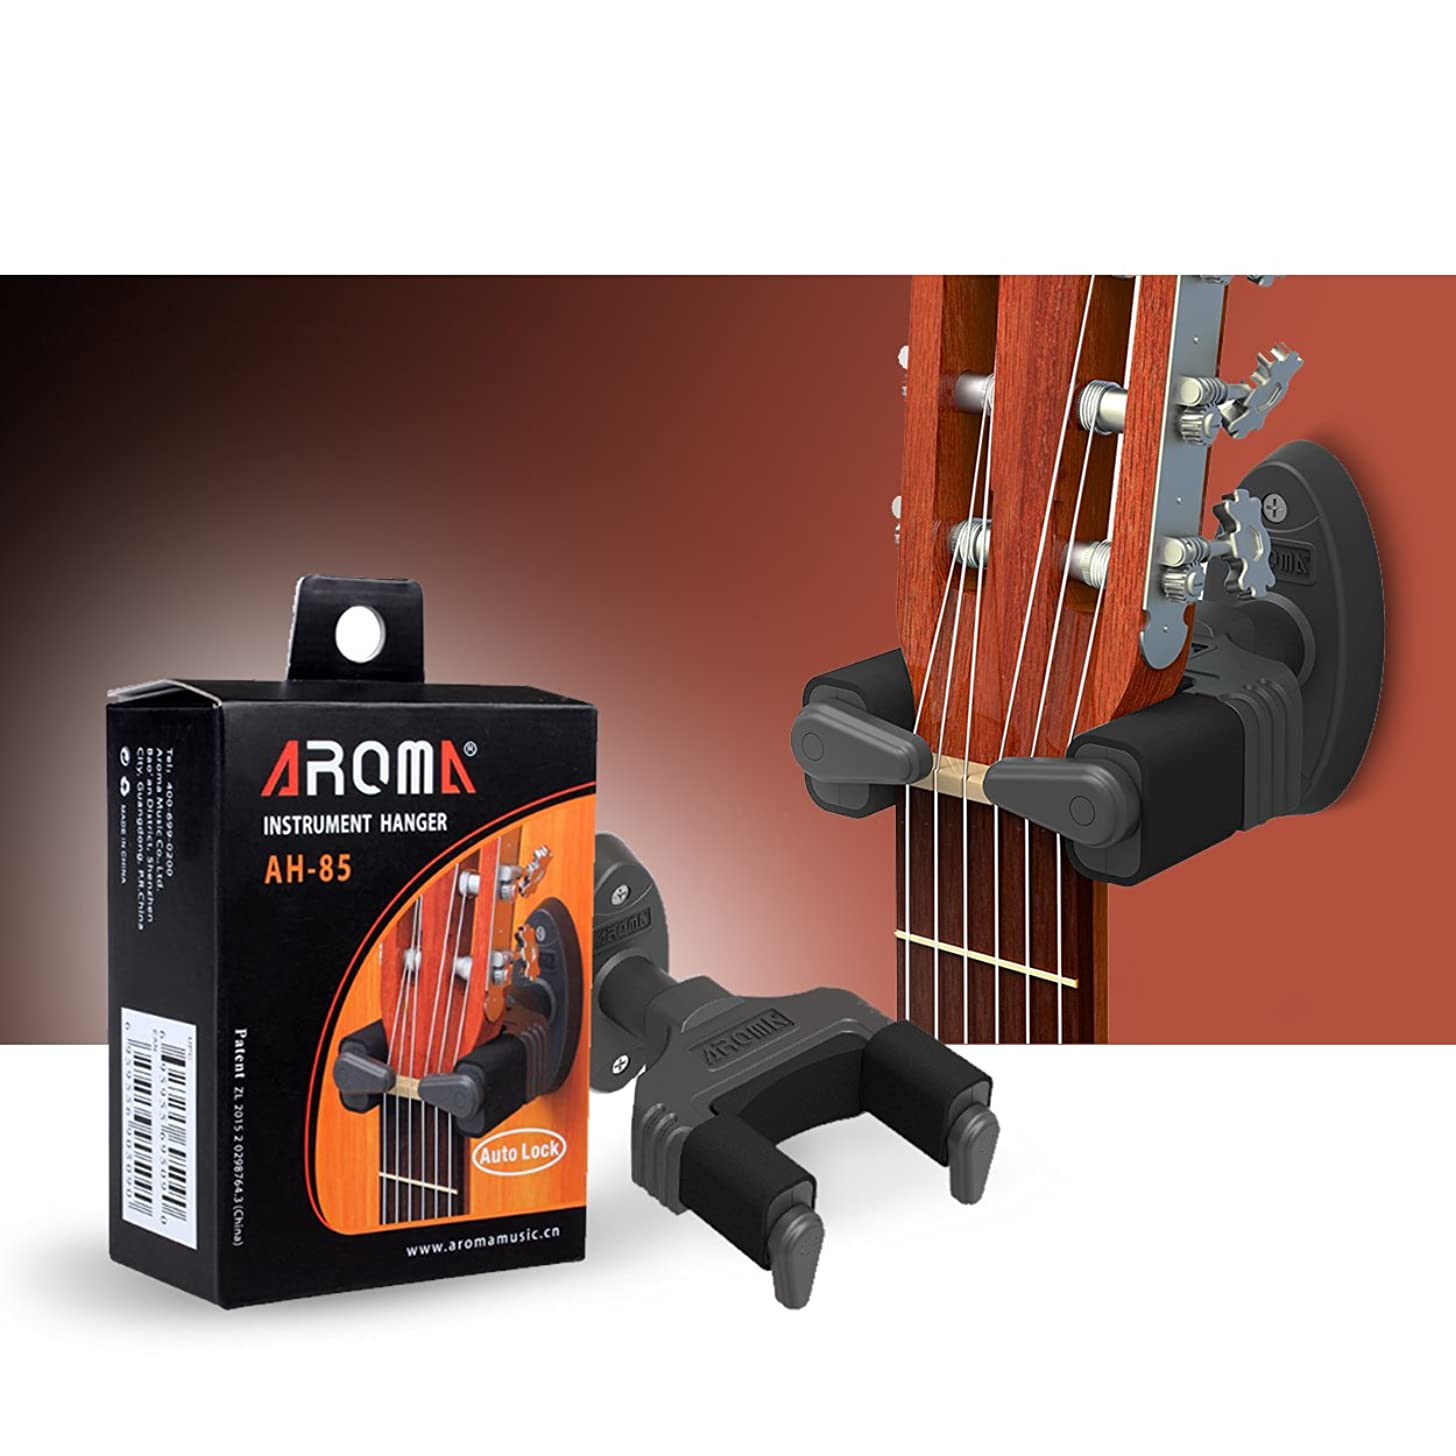 AROMA AH-85 Gravity Auto Lock Guitar Wall Hanger for Acoustic Electronic Guitar Bass, Plastic Black